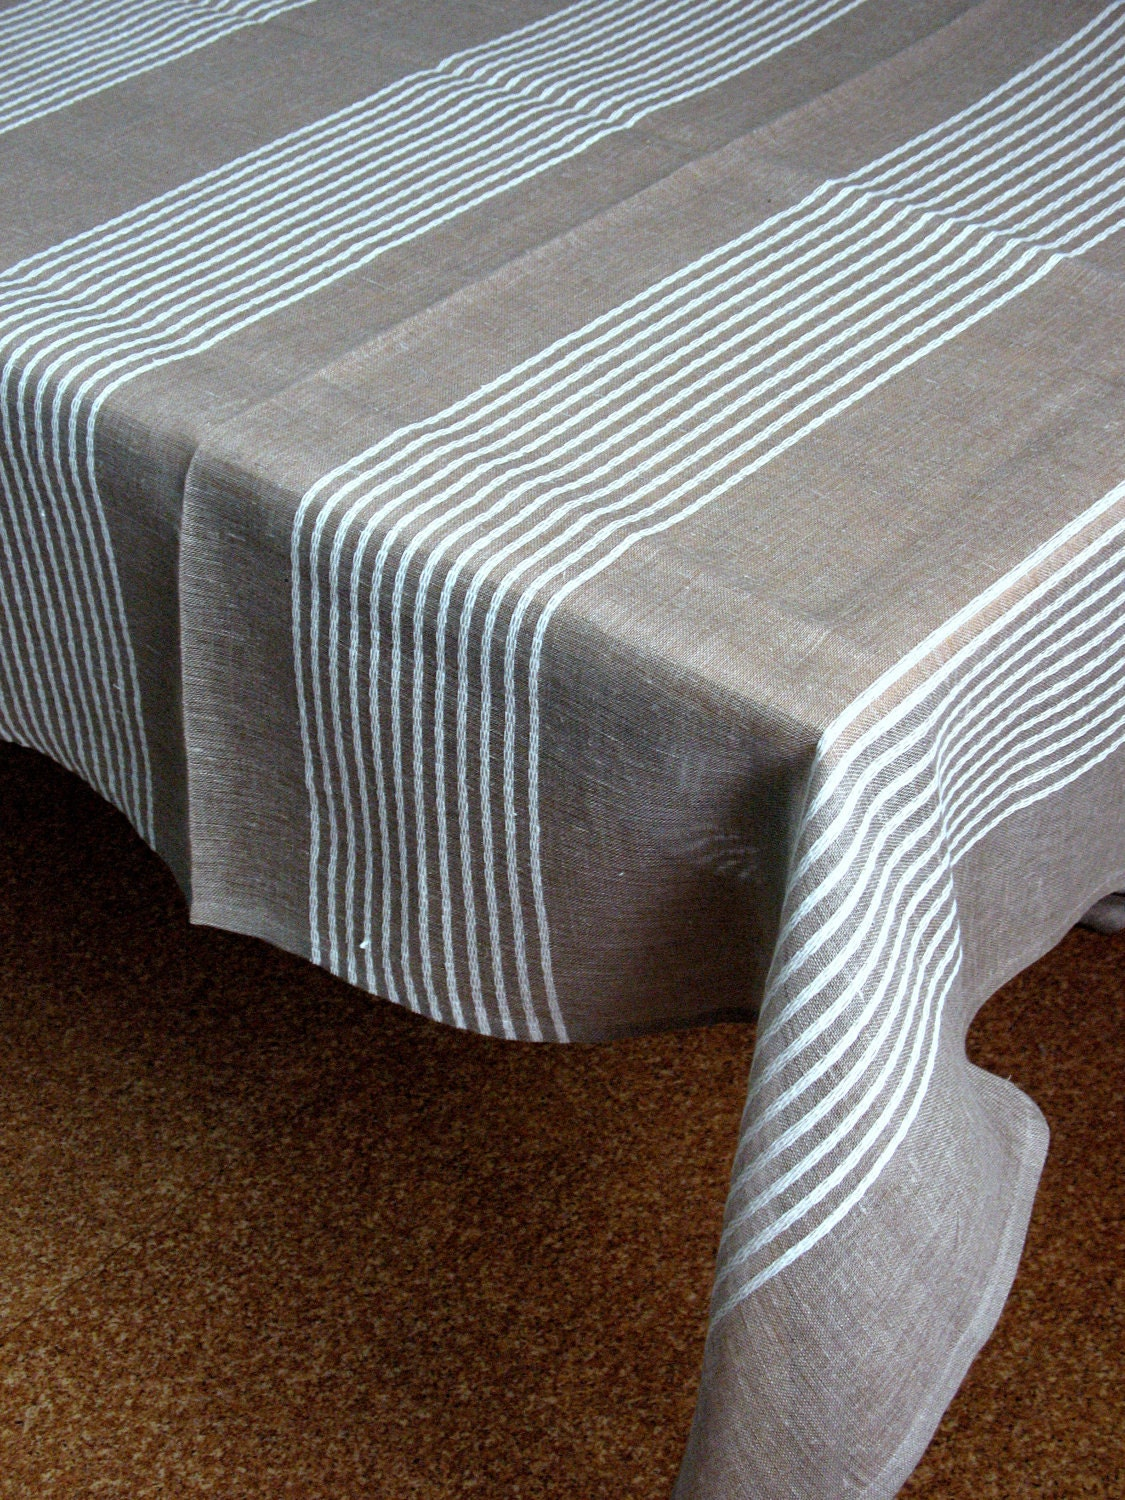 Shop for grey linen tablecloth online at Target. Free shipping on purchases over $35 and save 5% every day with your Target REDcard.